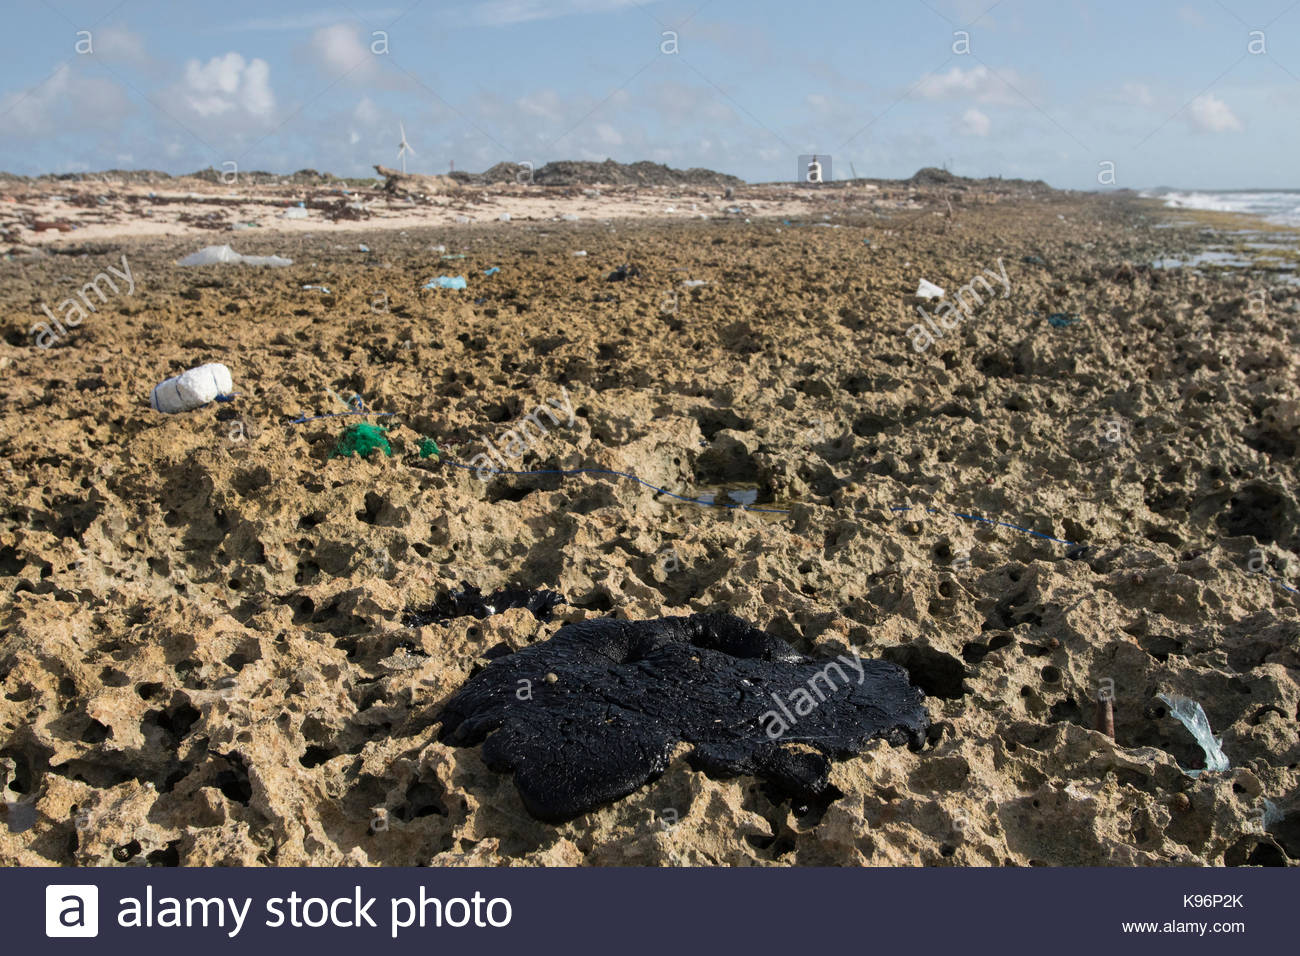 Crude oil along the east coast of Bonaire after a nearby oil spill in Trinidad. Stock Photo